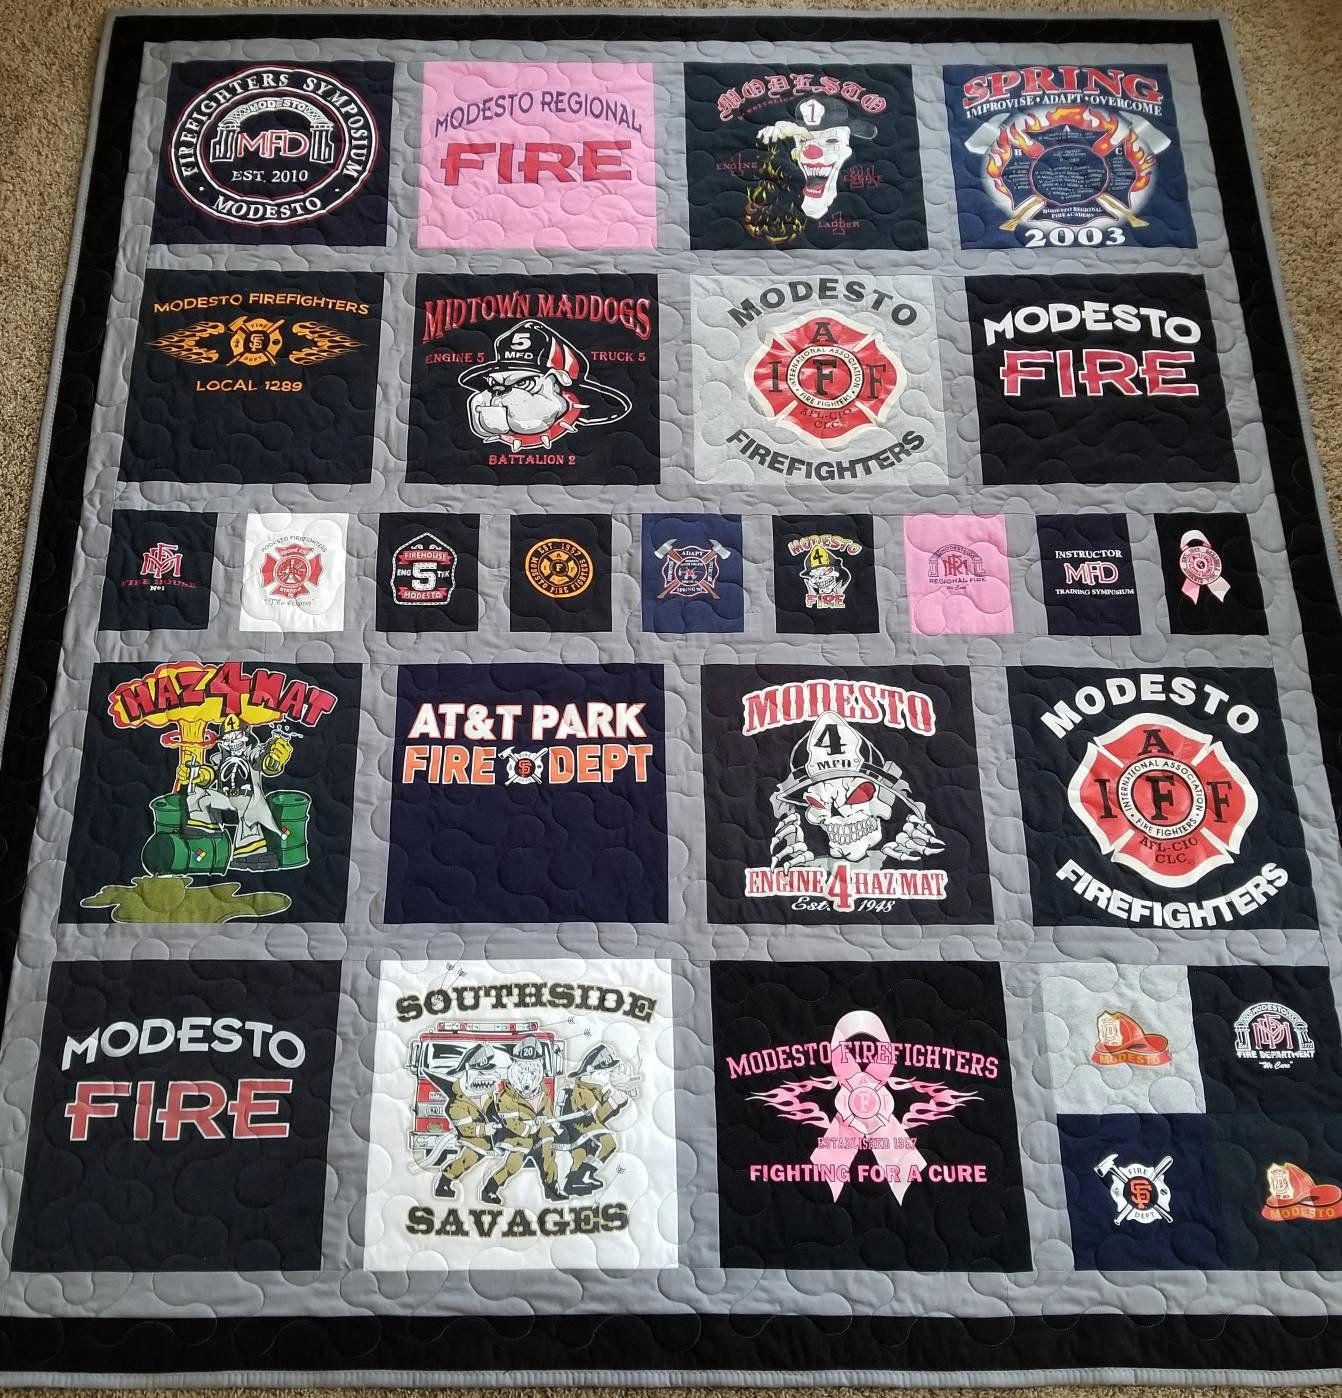 Cool options to give some thought to quiltsquares